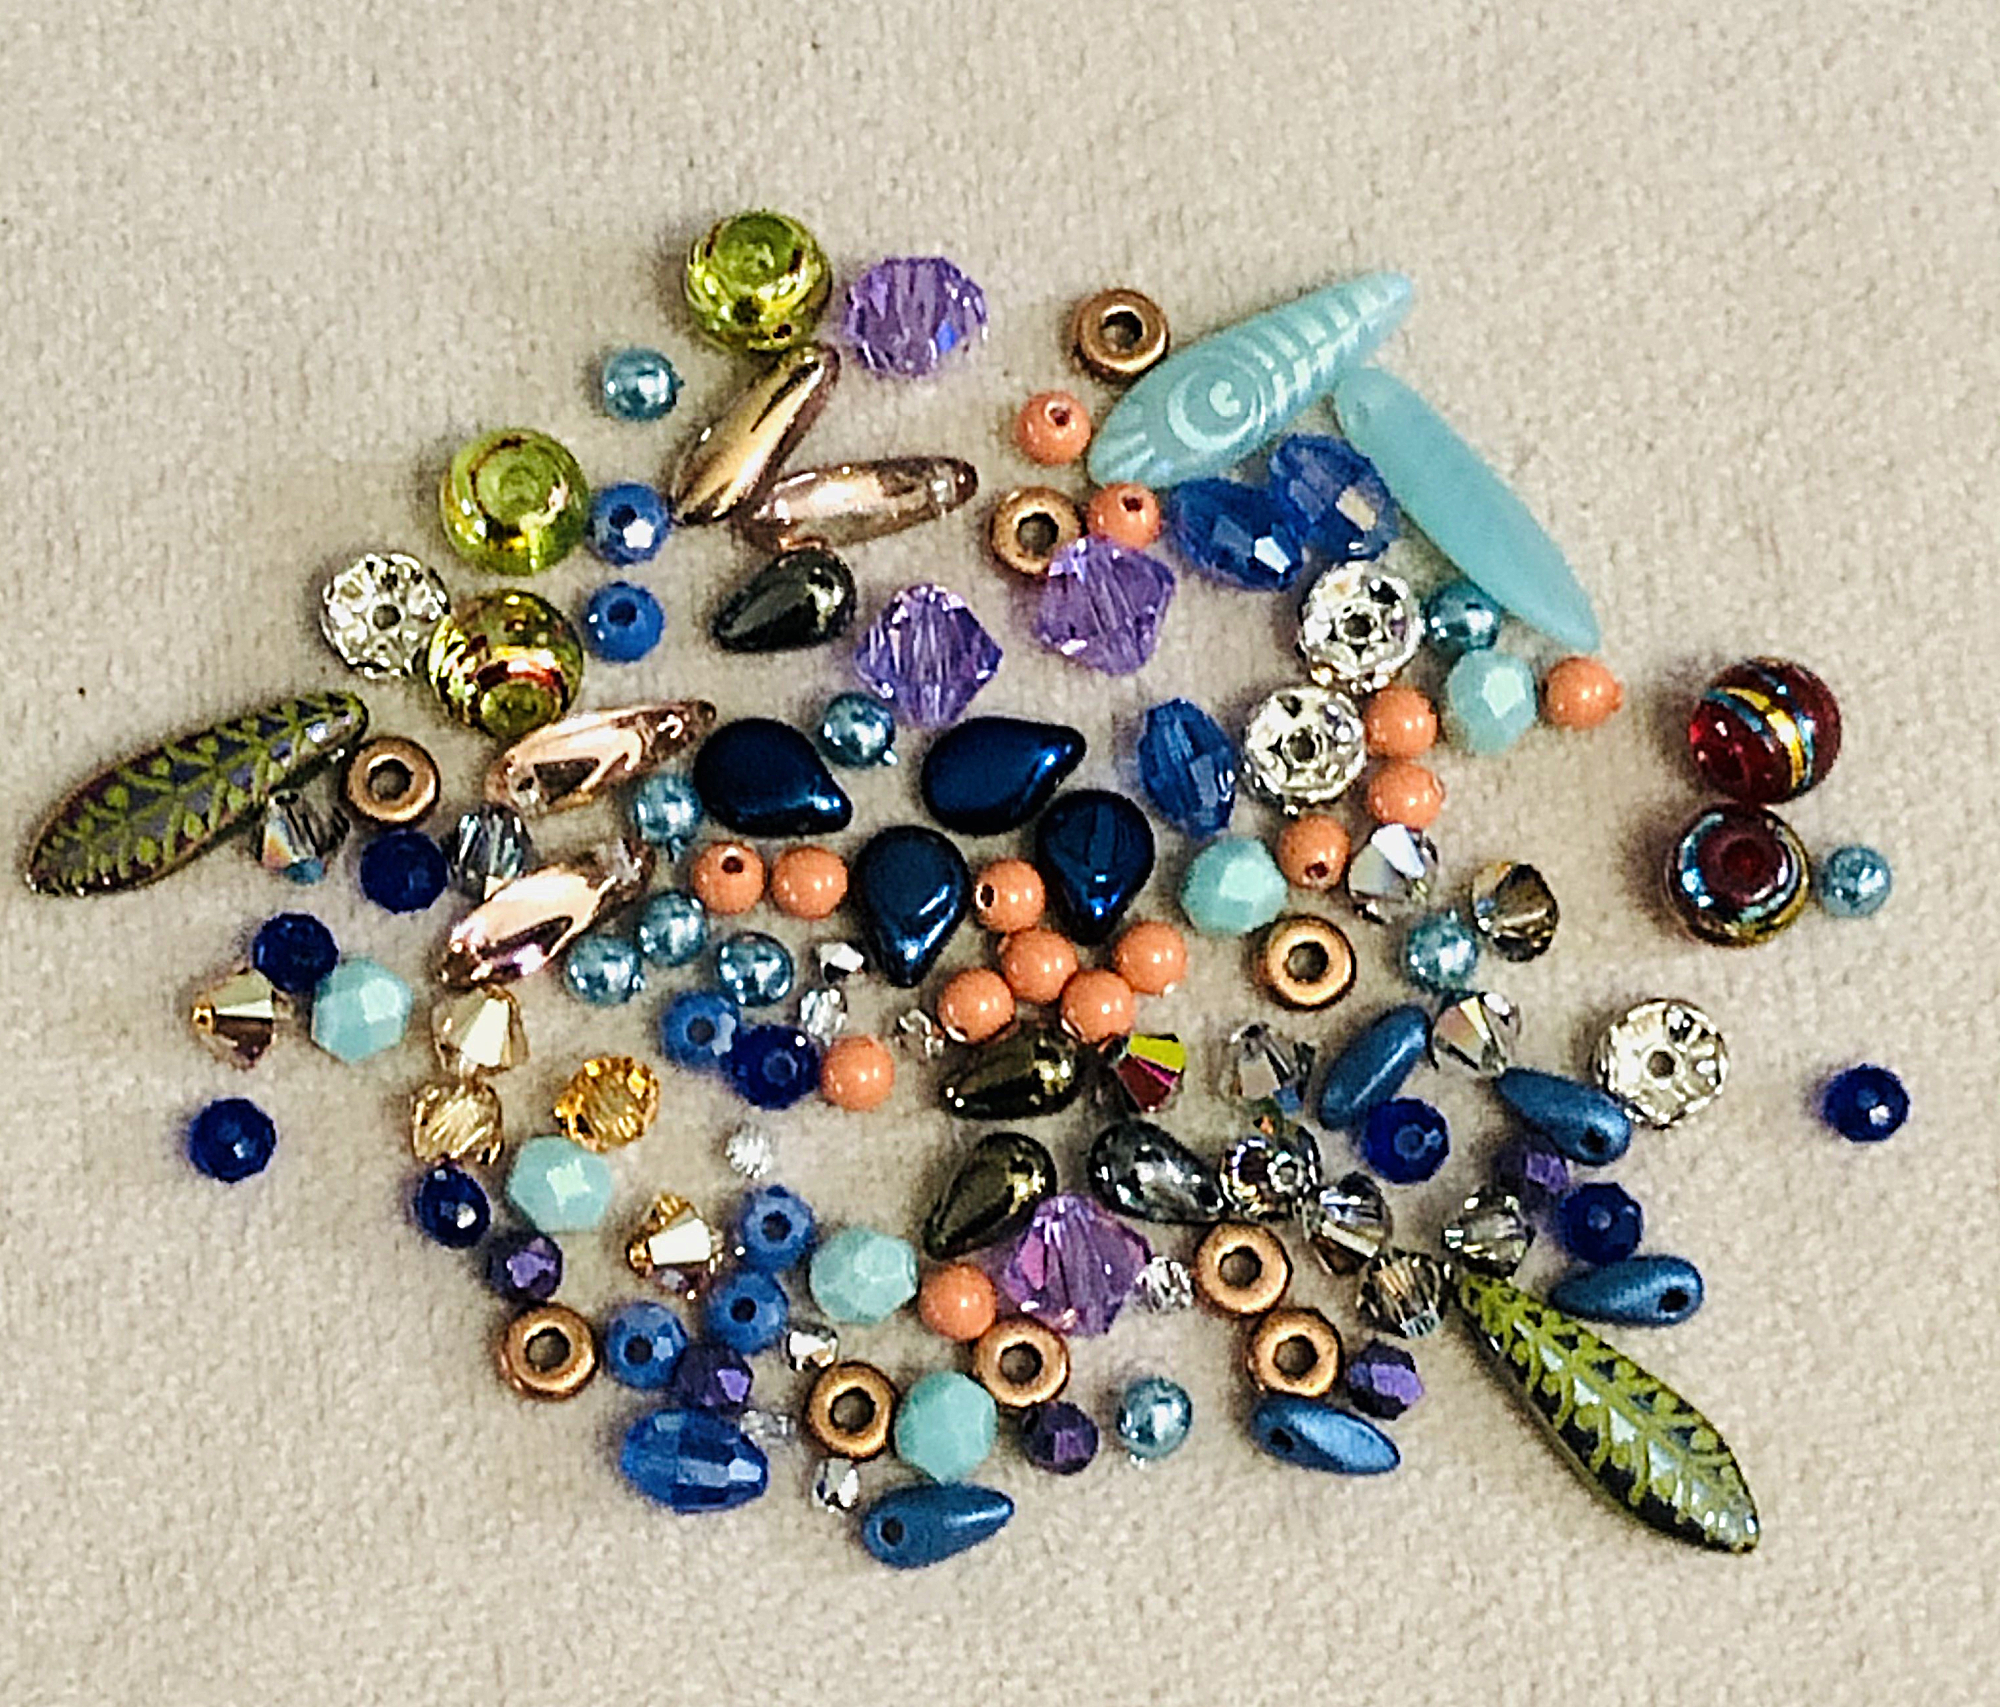 See the Materials List below for suggestions of beads to use for the fringe